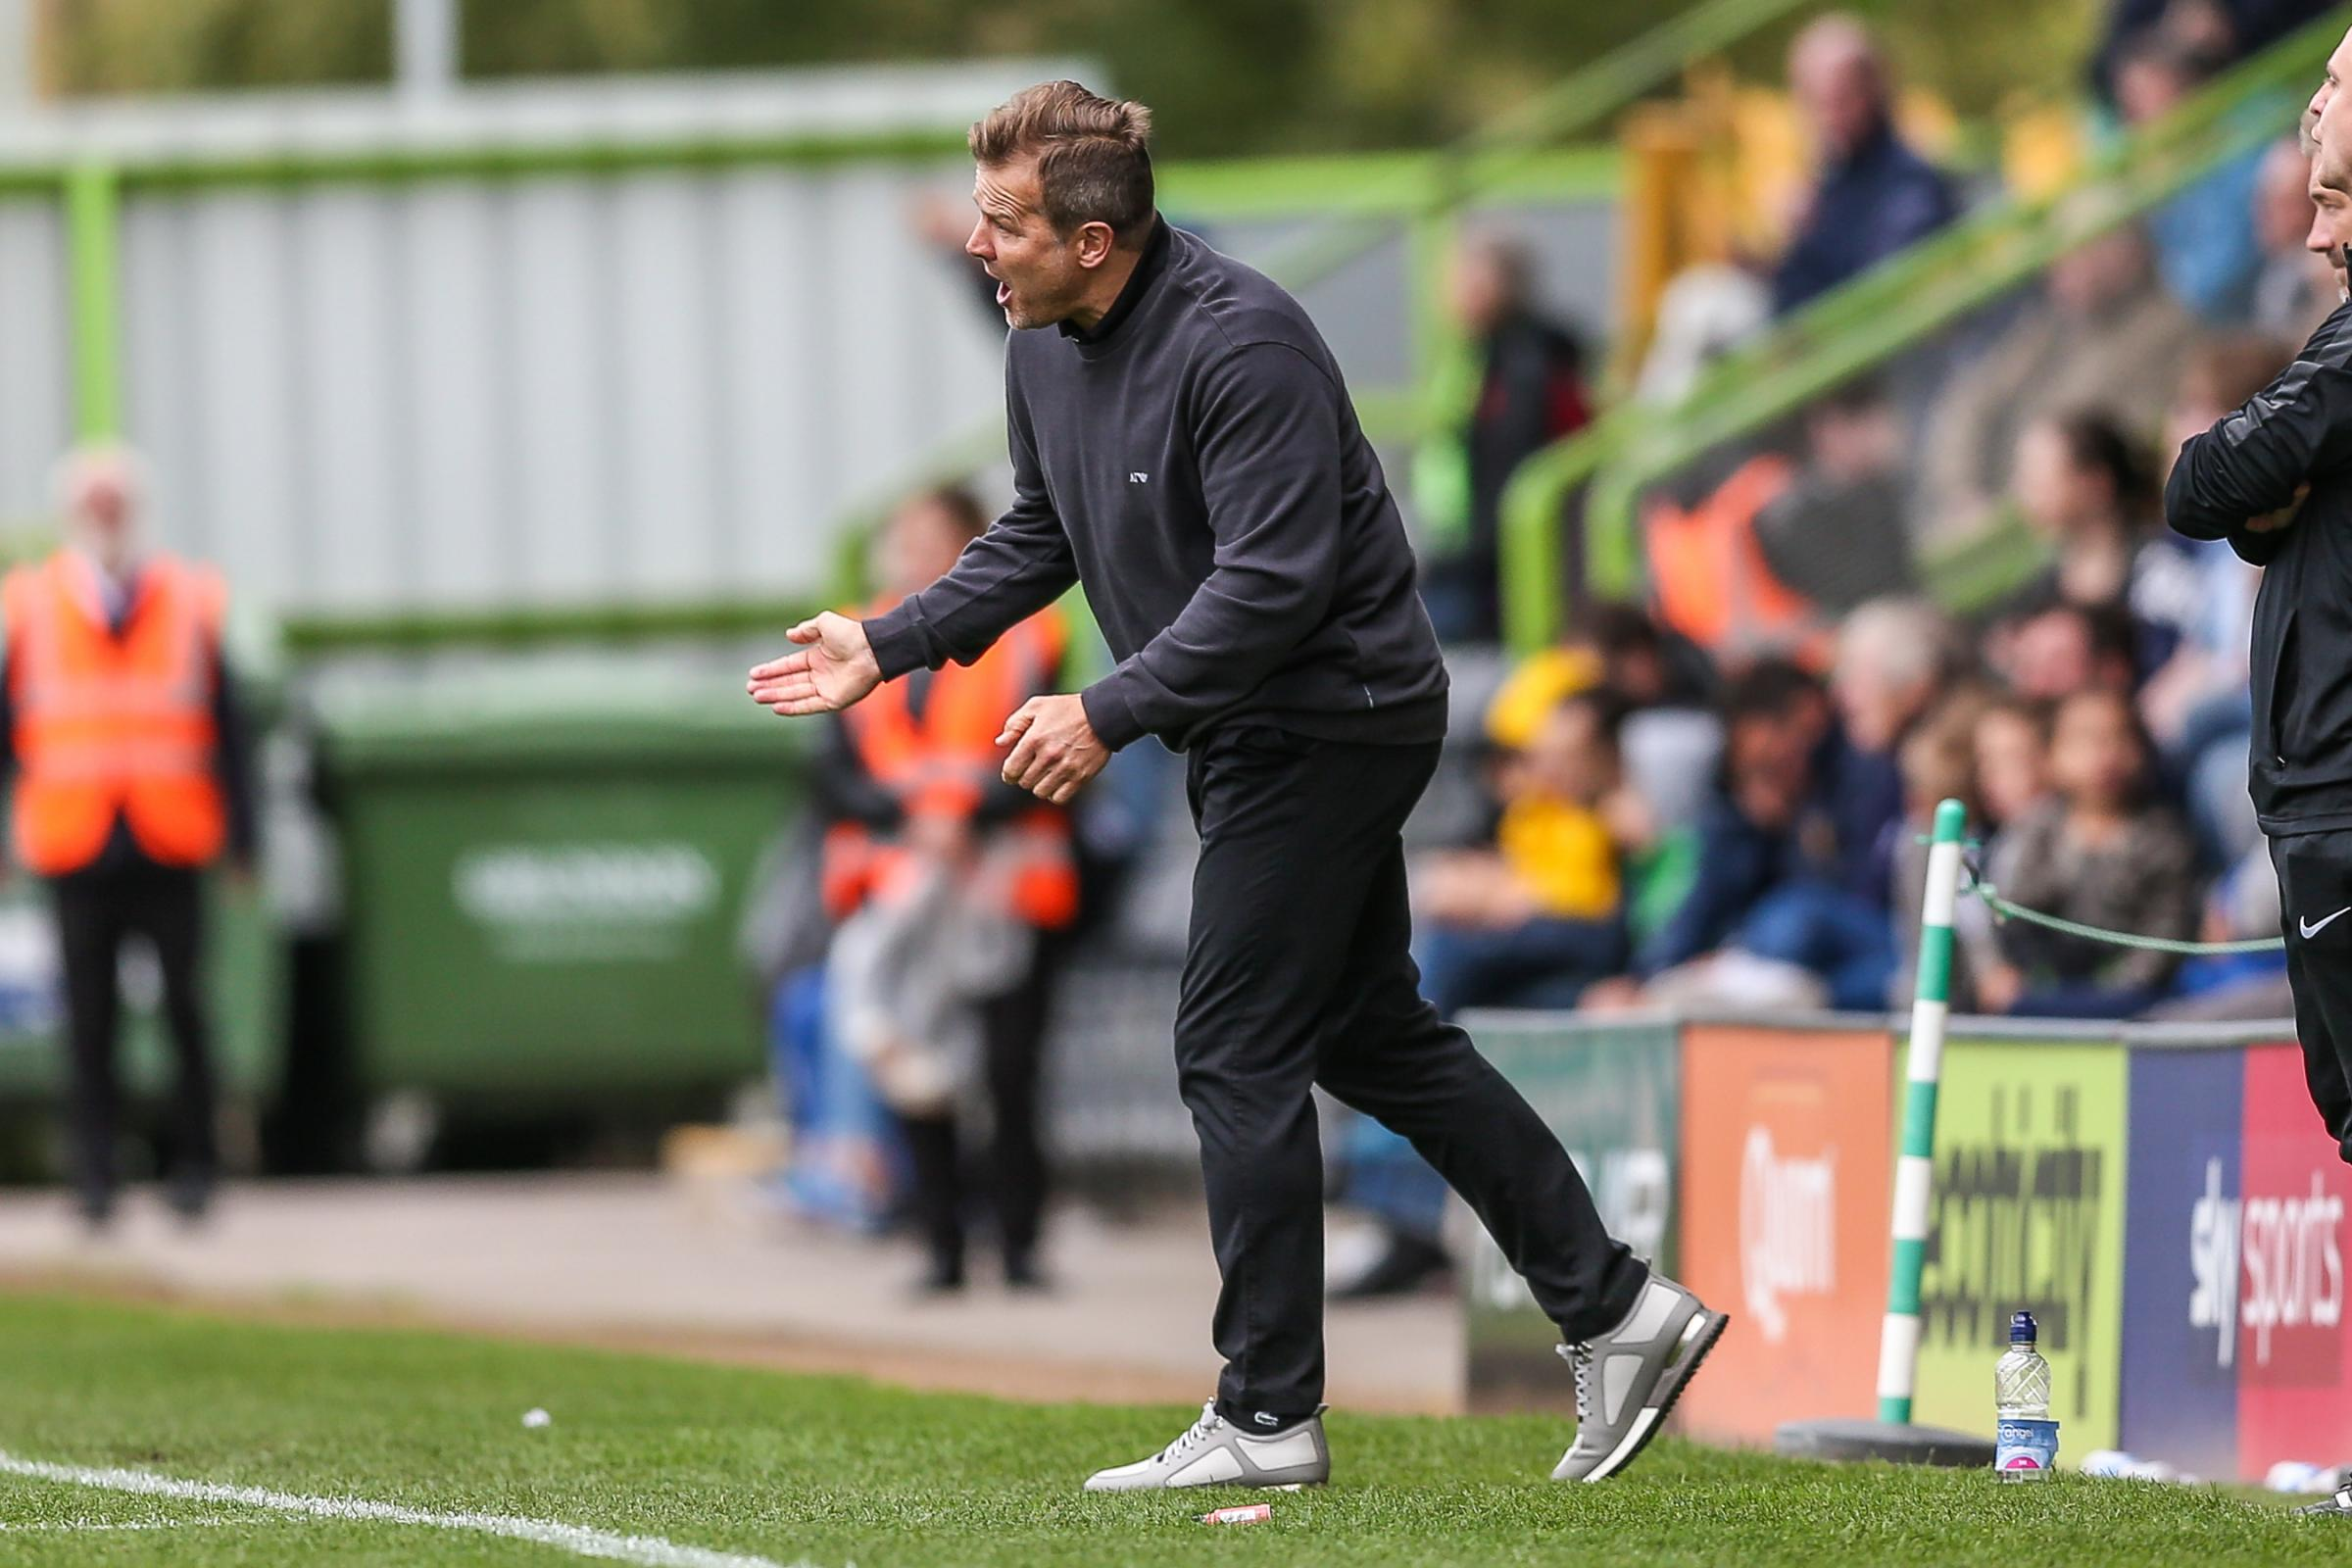 Forest Green Rovers manager, Mark Cooper during the EFL Sky Bet League 2 match between Forest Green Rovers and Port Vale at the New Lawn, Forest Green, United Kingdom on 8 September 2018.